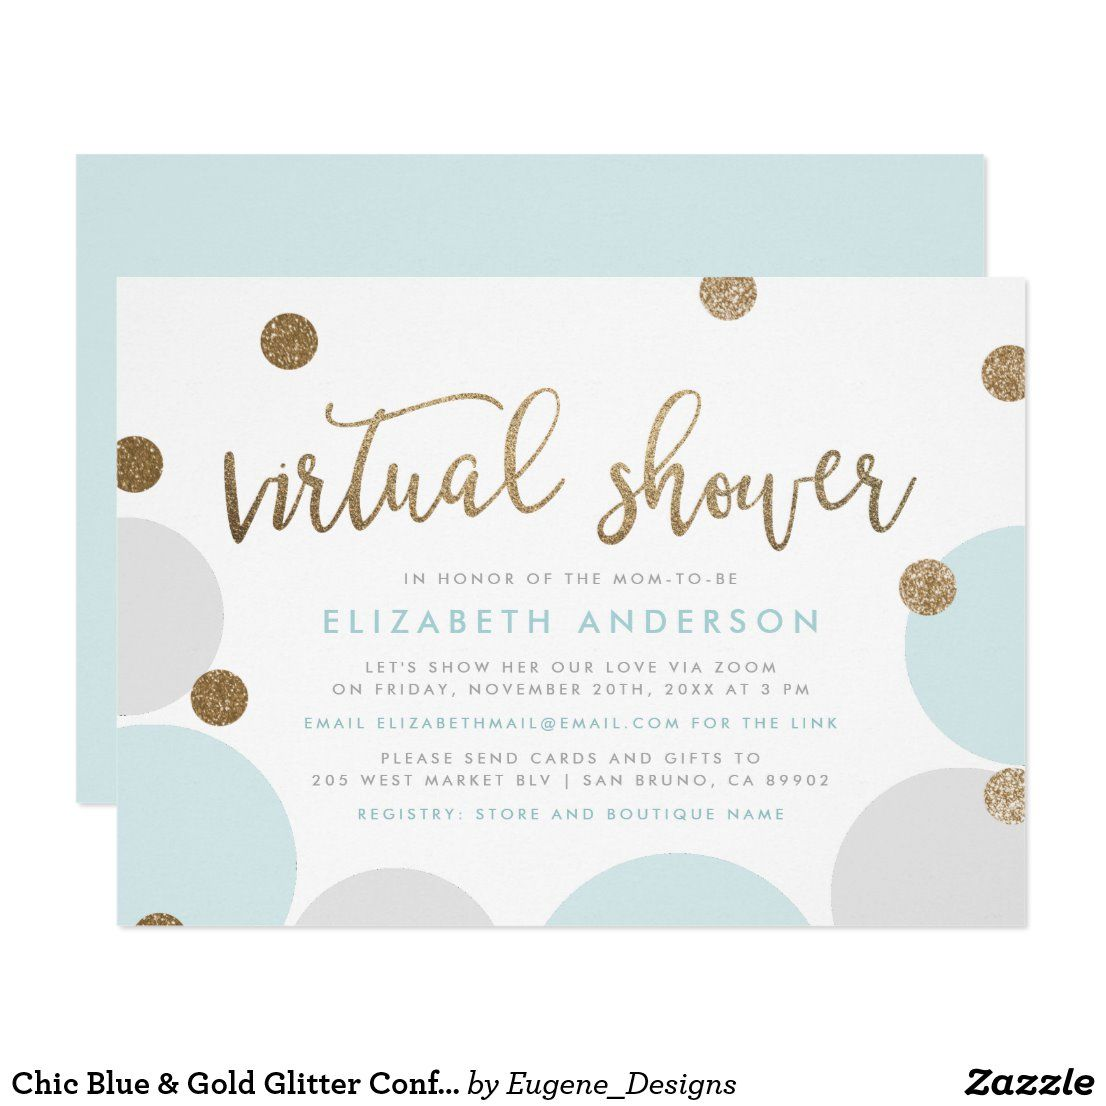 Chic Blue Gold Glitter Confetti Virtual Shower Invitation Zazzle Com In 2020 Virtual Shower Virtual Baby Shower Invitation Virtual Baby Shower Ideas